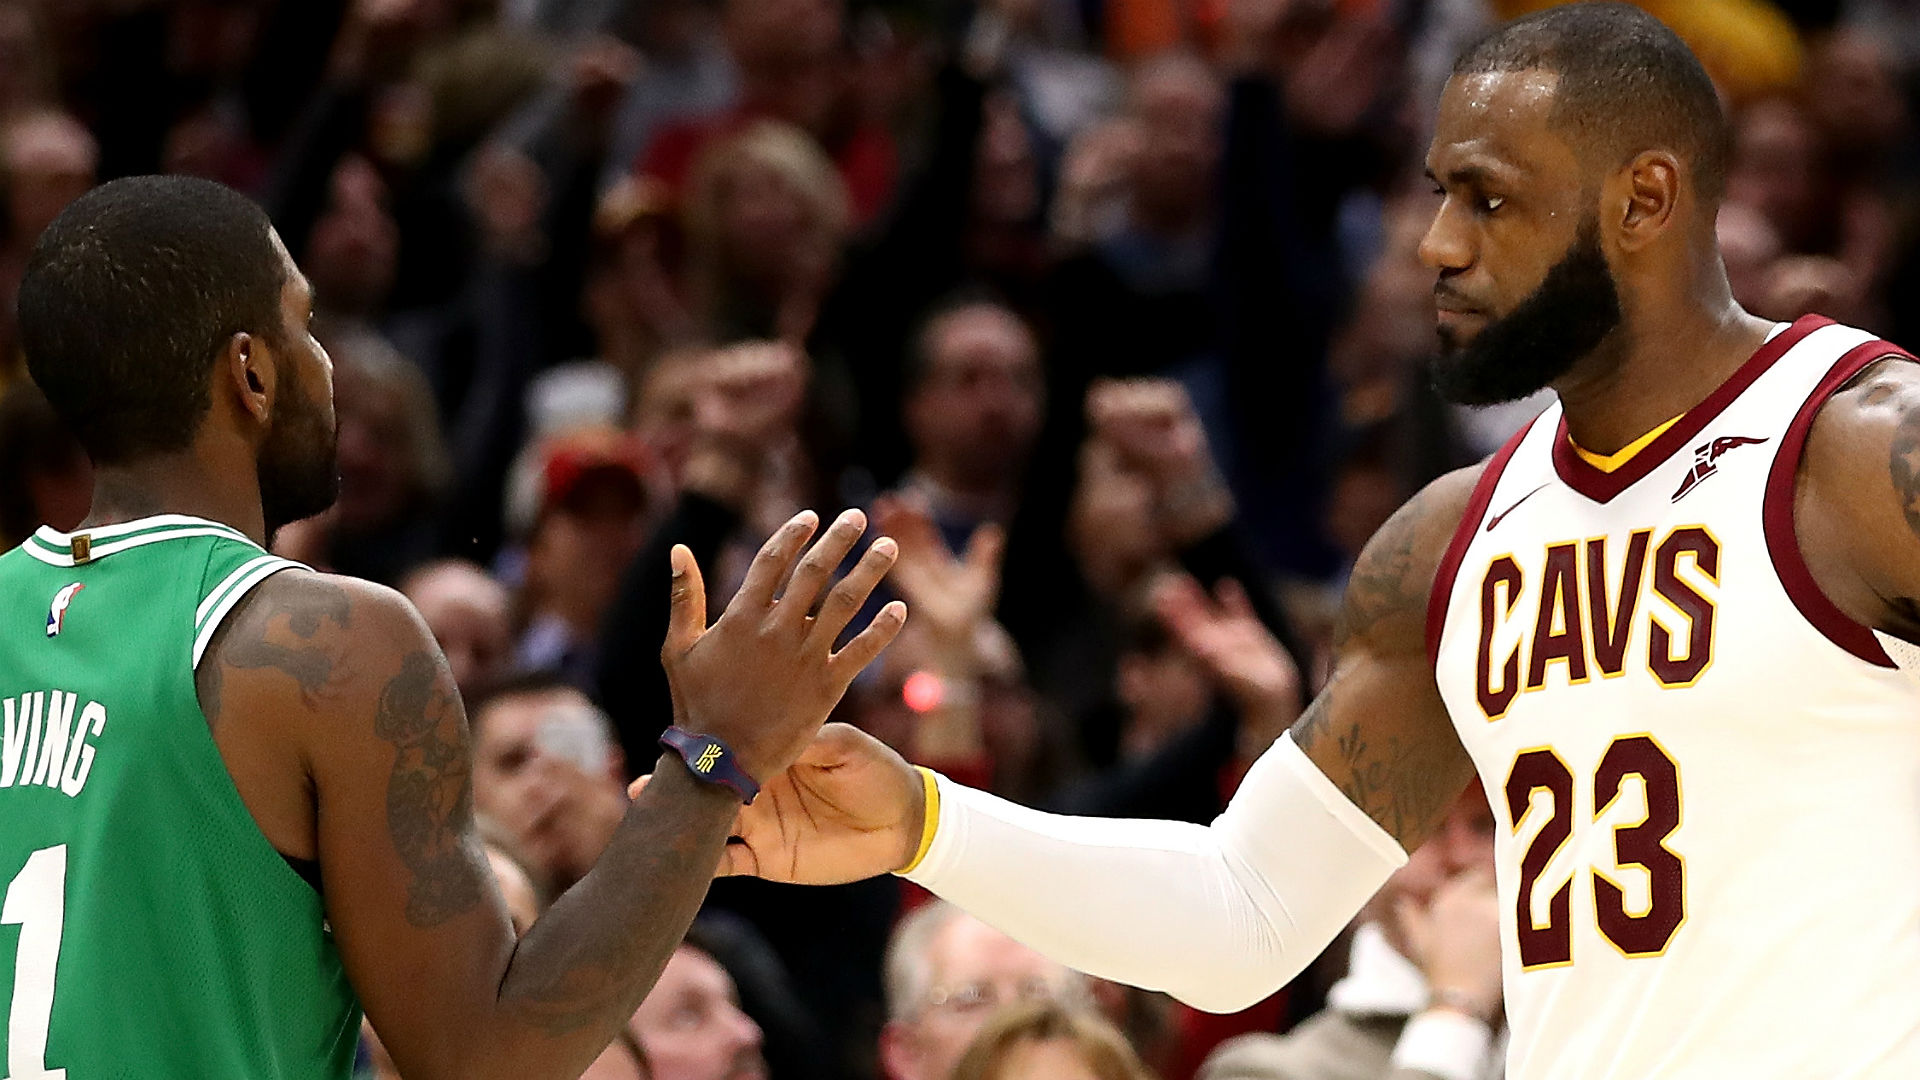 Kyrie Irving defends LeBron James: 'He checks every mark' in MVP race